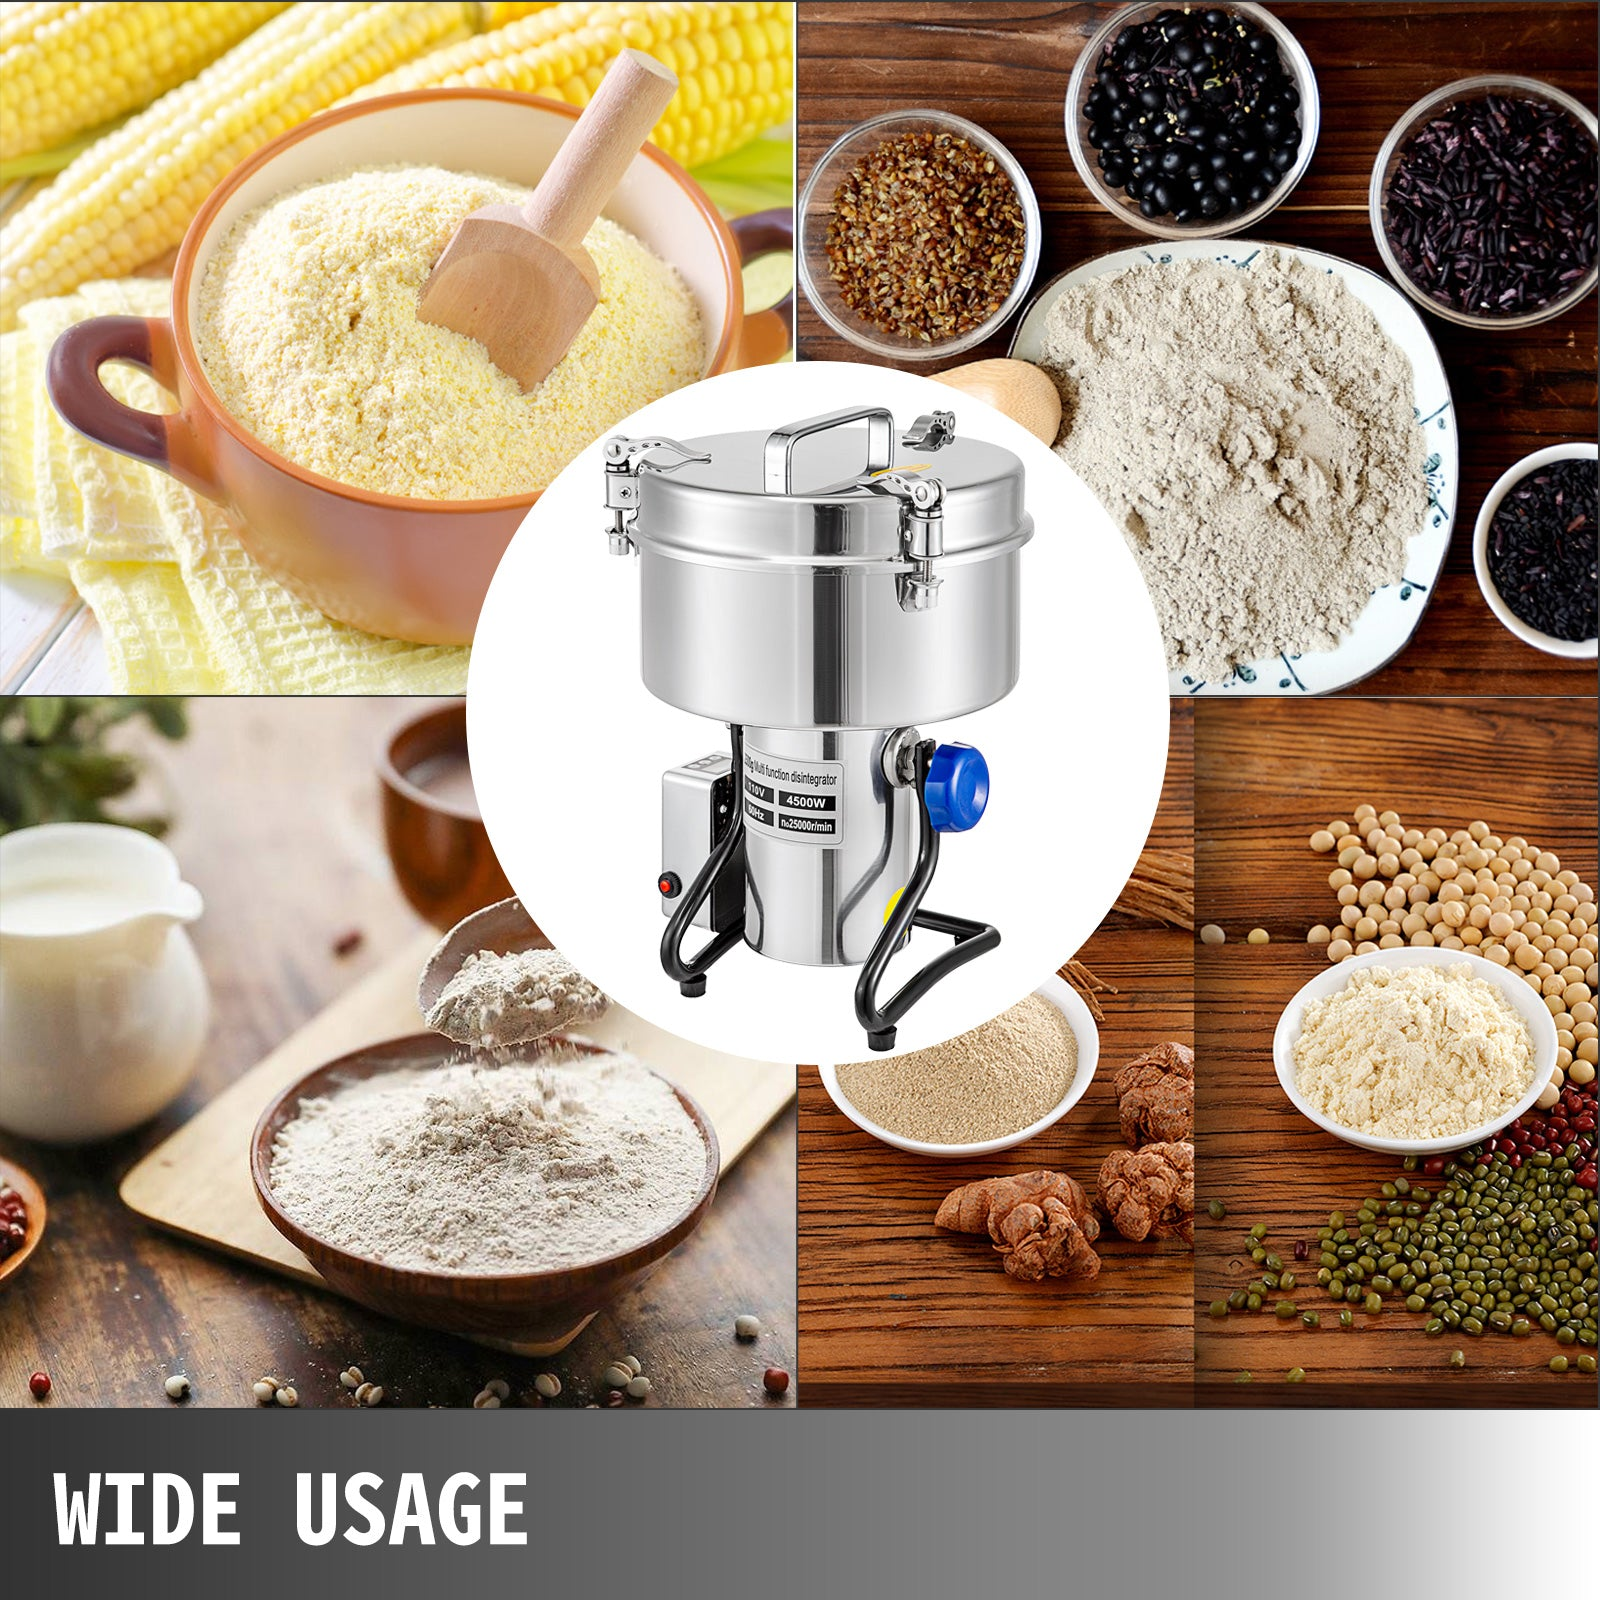 Grinding Machine For Grain Electric Grain Grinder 2500g, Powder Grinding Machine